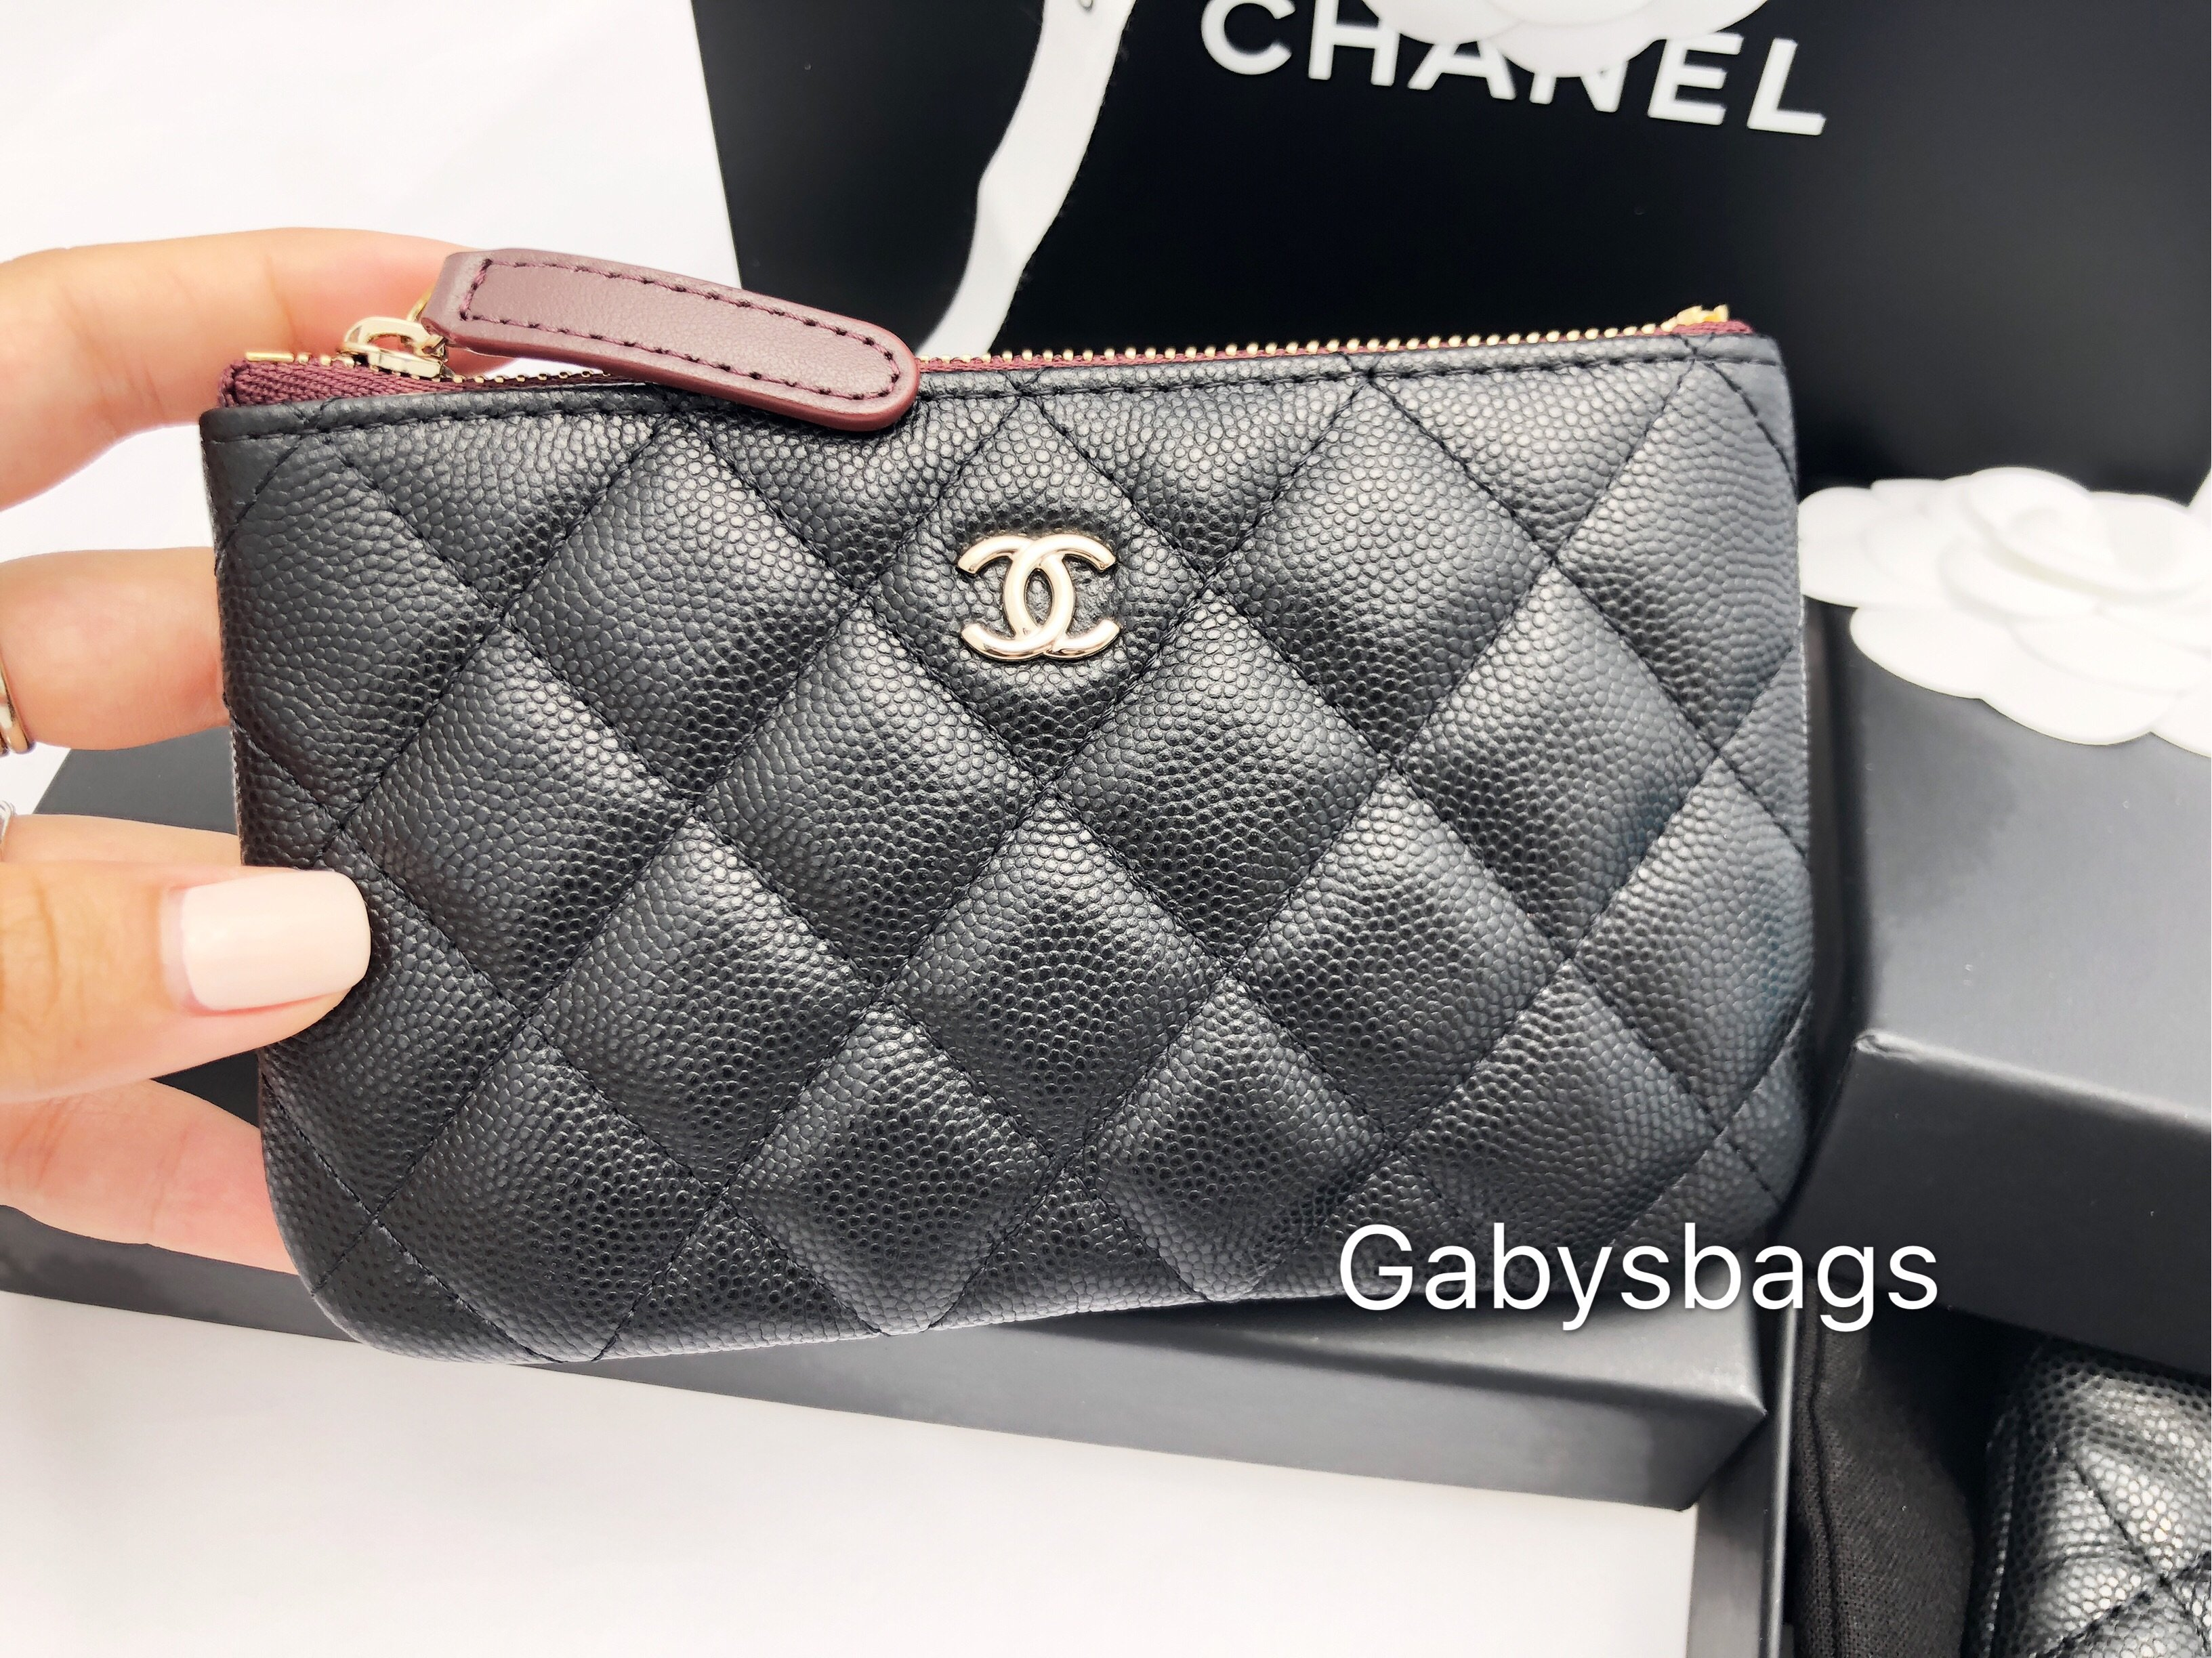 ce3381b2b62a6c Chanel Caviar Small Wallet ราคา | Stanford Center for Opportunity ...